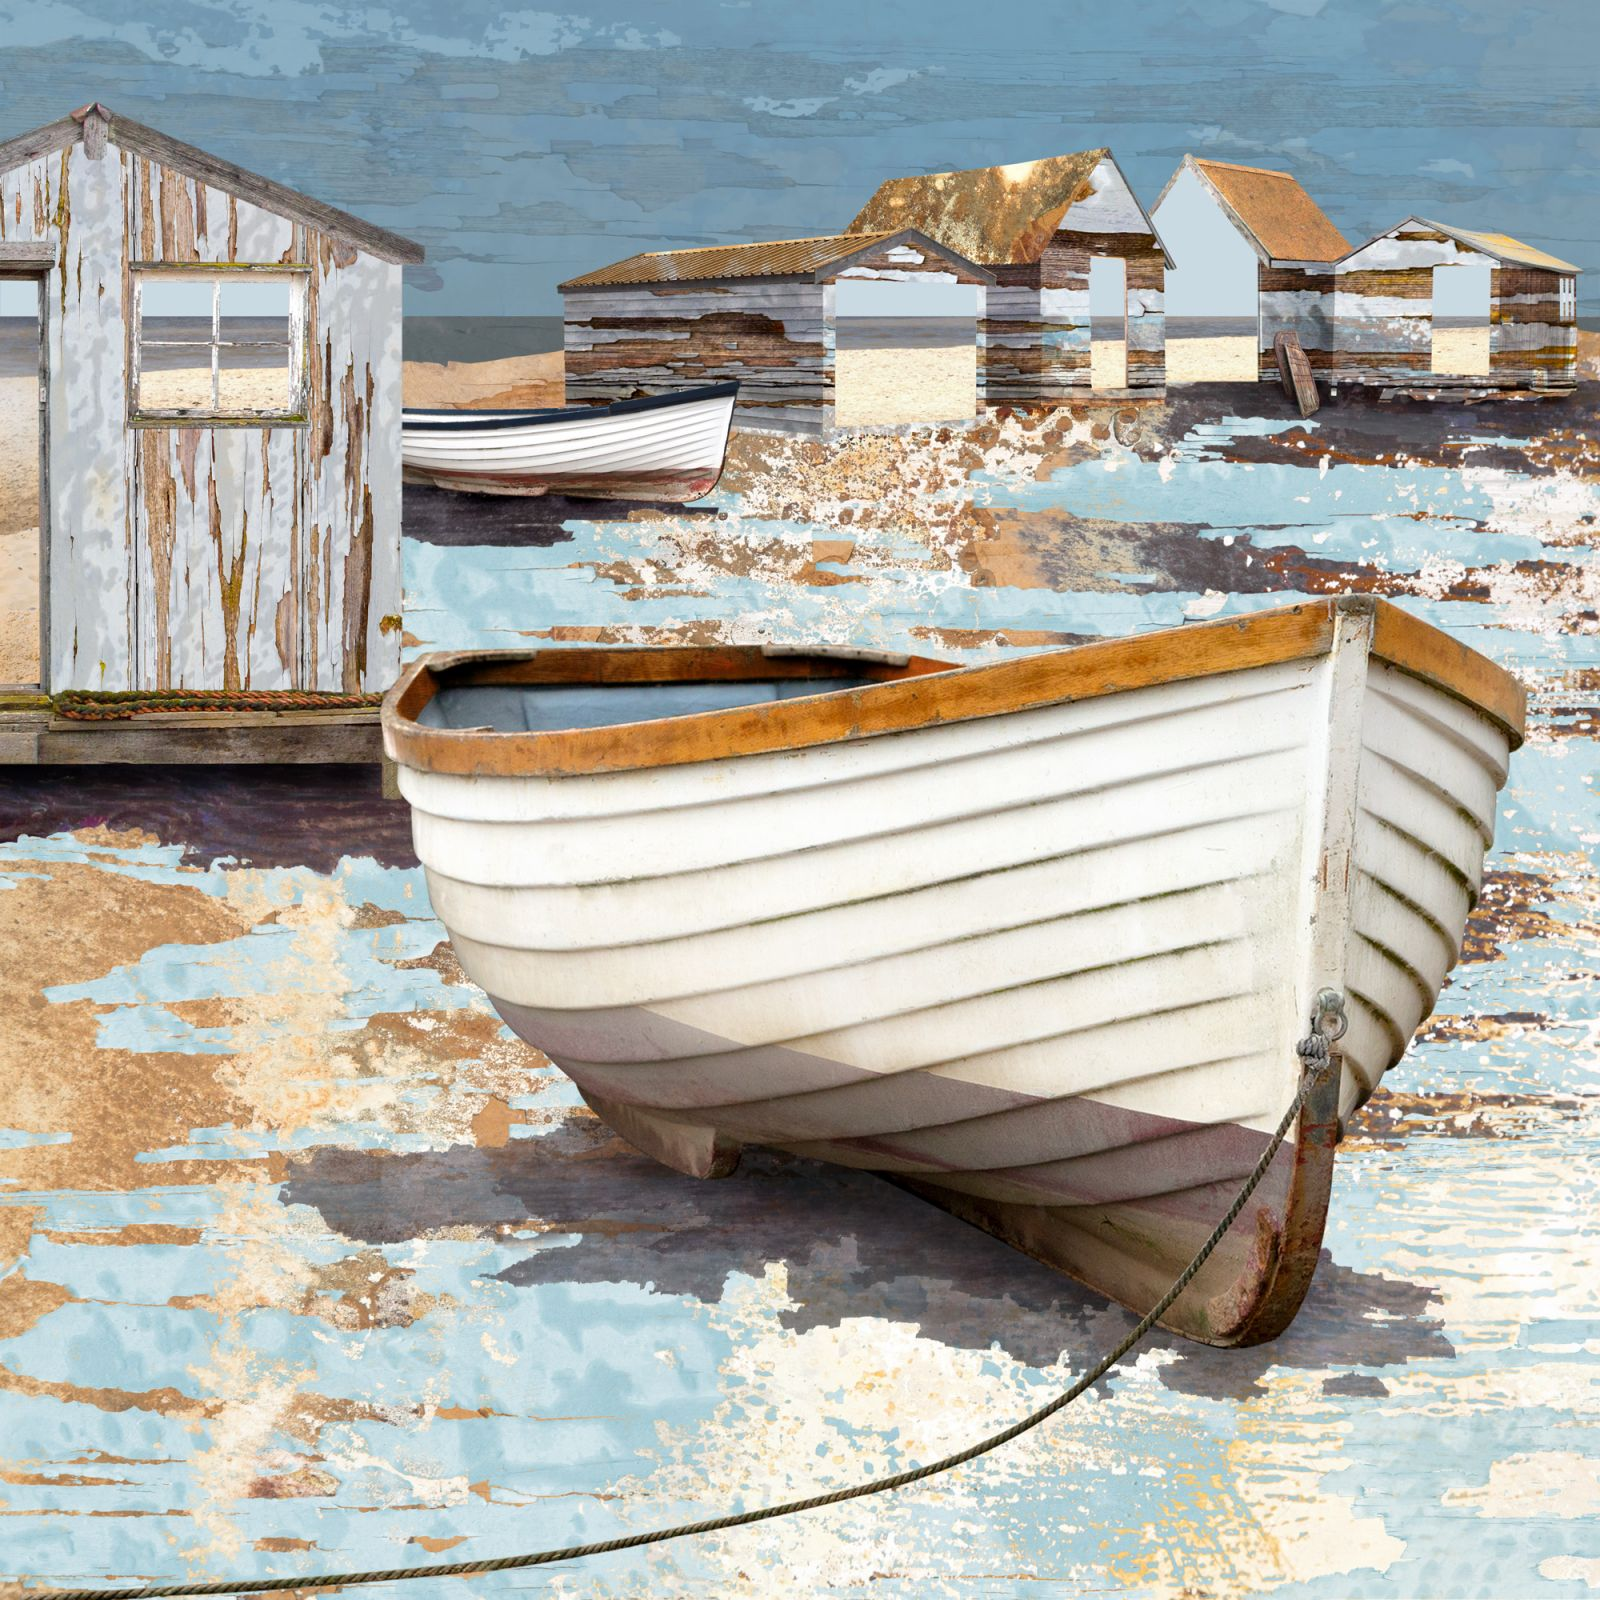 Claire Gill Artist, fine art card, greeting card, limited edition print, hahnemuhle, buy art, collect art, seascapes, photomontage, coastal art, limited edition prints, seascape 84, Beach, Southwold Harbour Harbour, boats, Southwold, Suffolk Coast